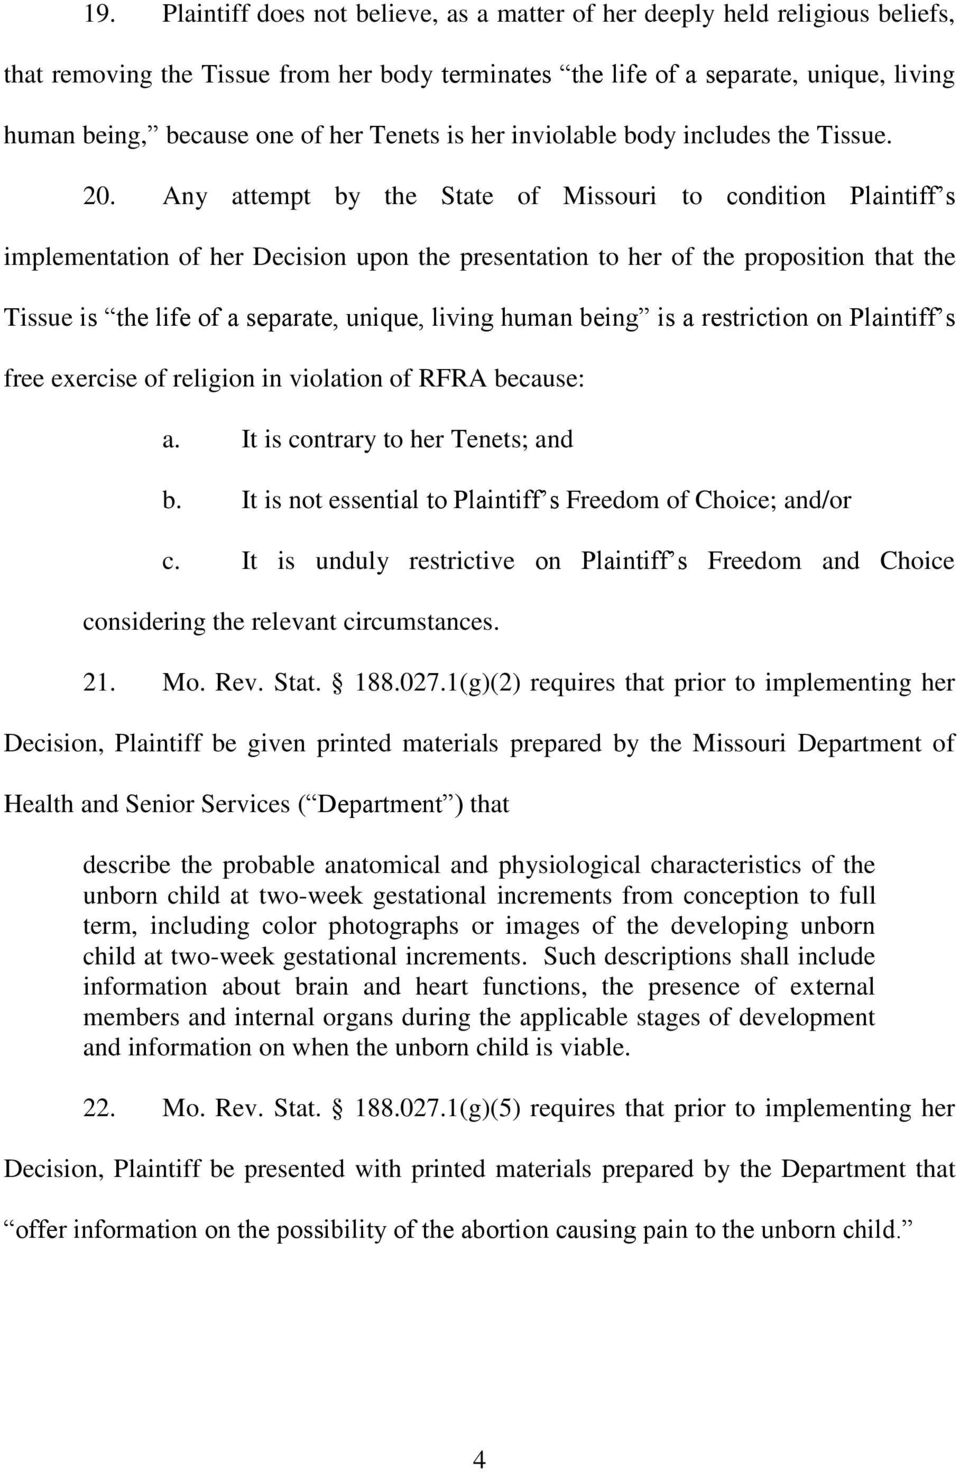 Any attempt by the State of Missouri to condition Plaintiff s implementation of her Decision upon the presentation to her of the proposition that the Tissue is the life of a separate, unique, living